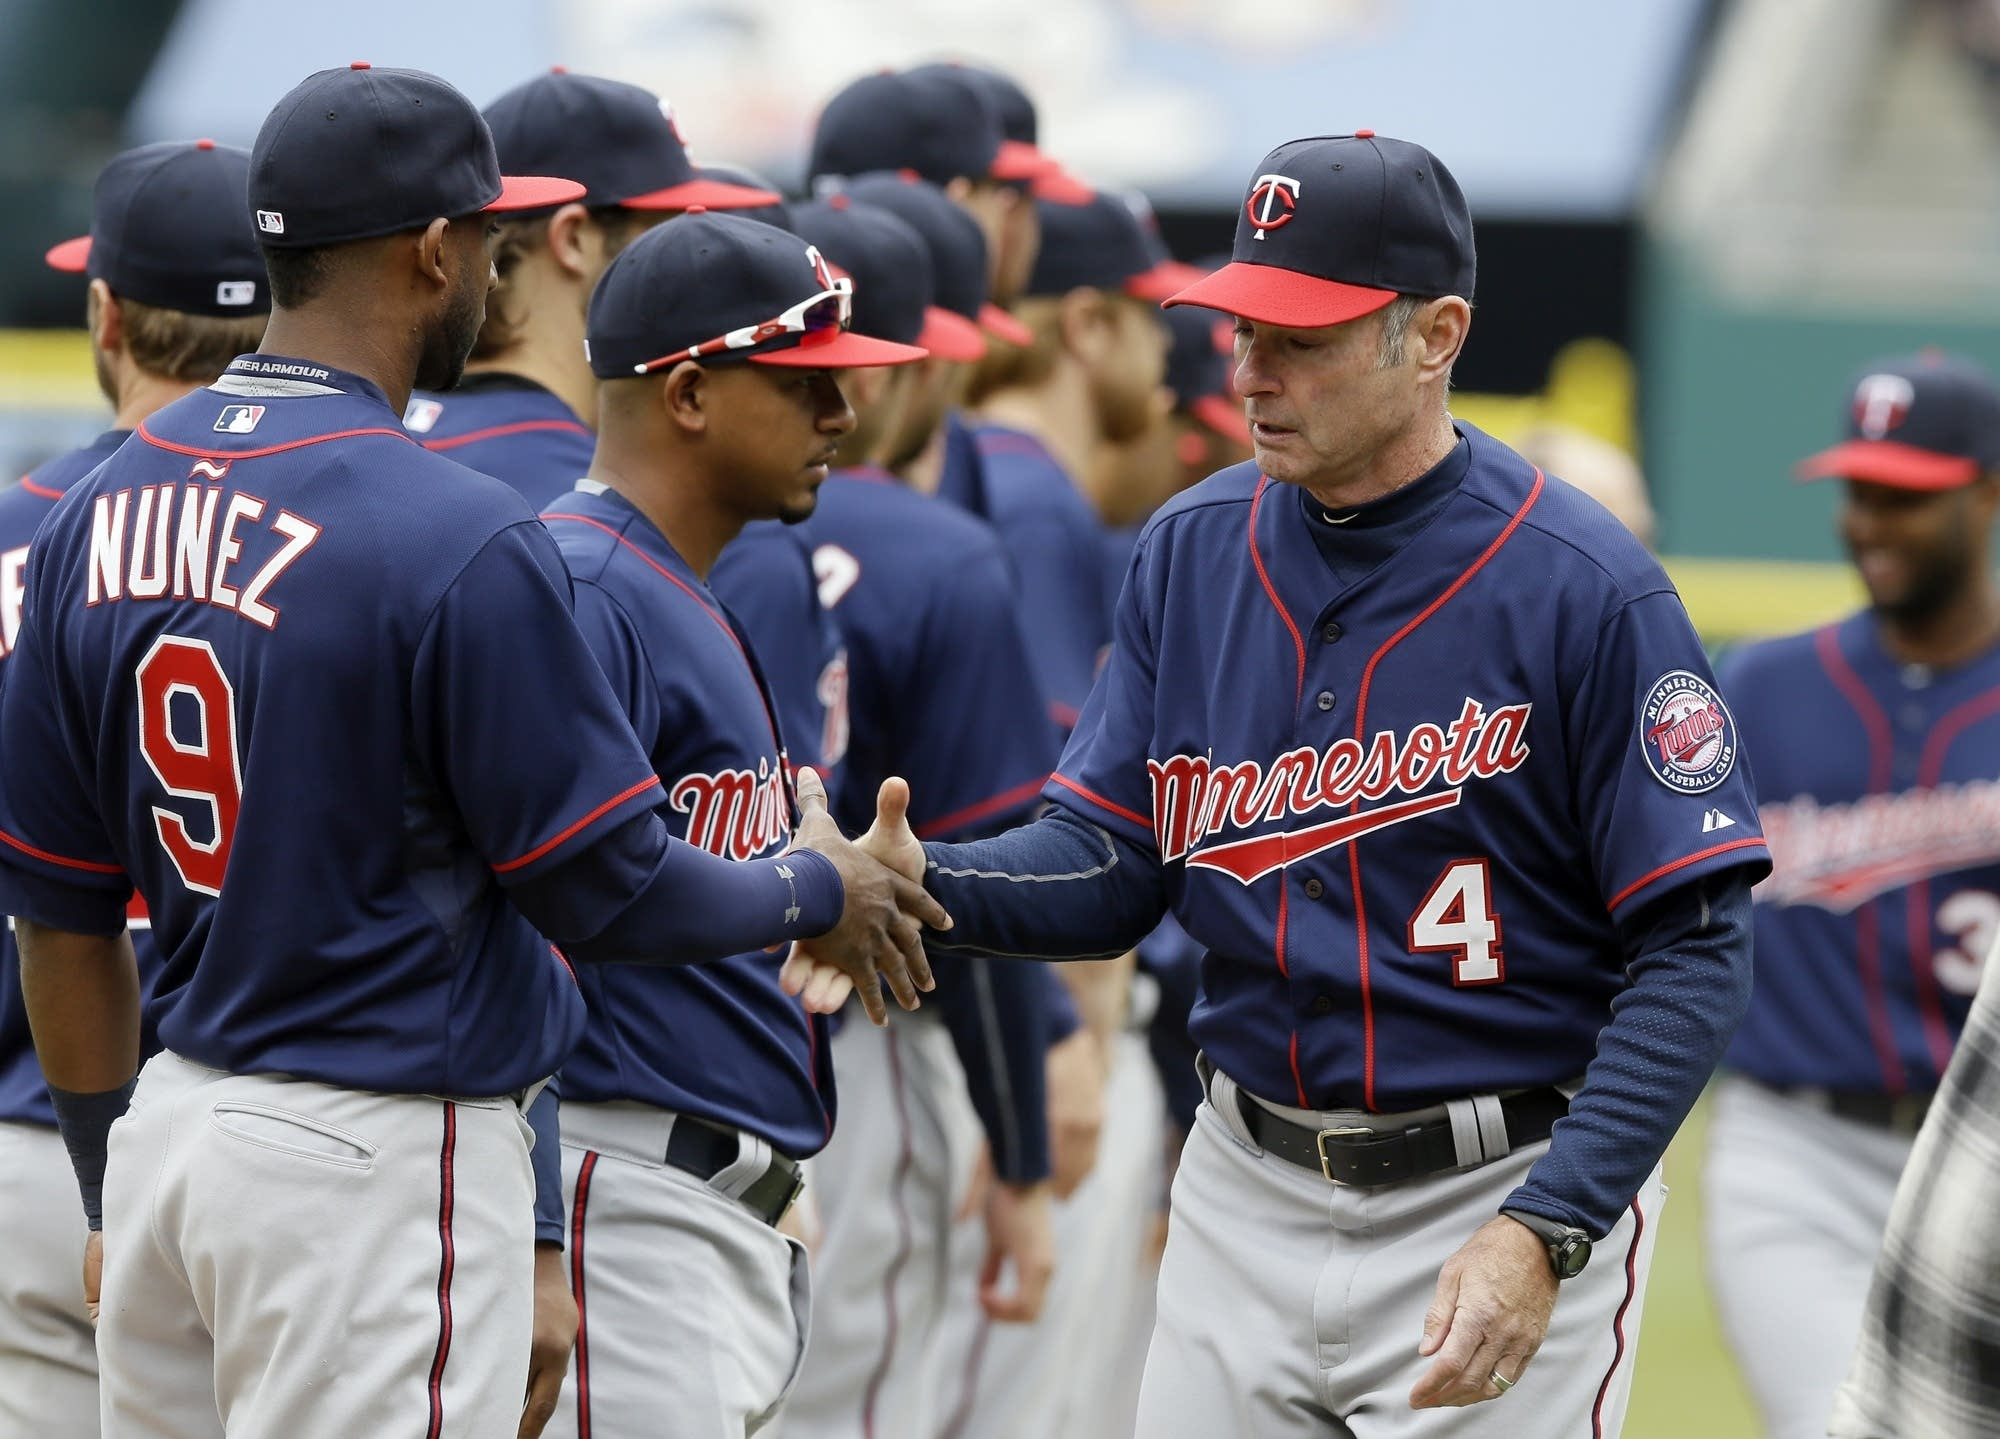 Twins manager Paul Molitor greets players baseball